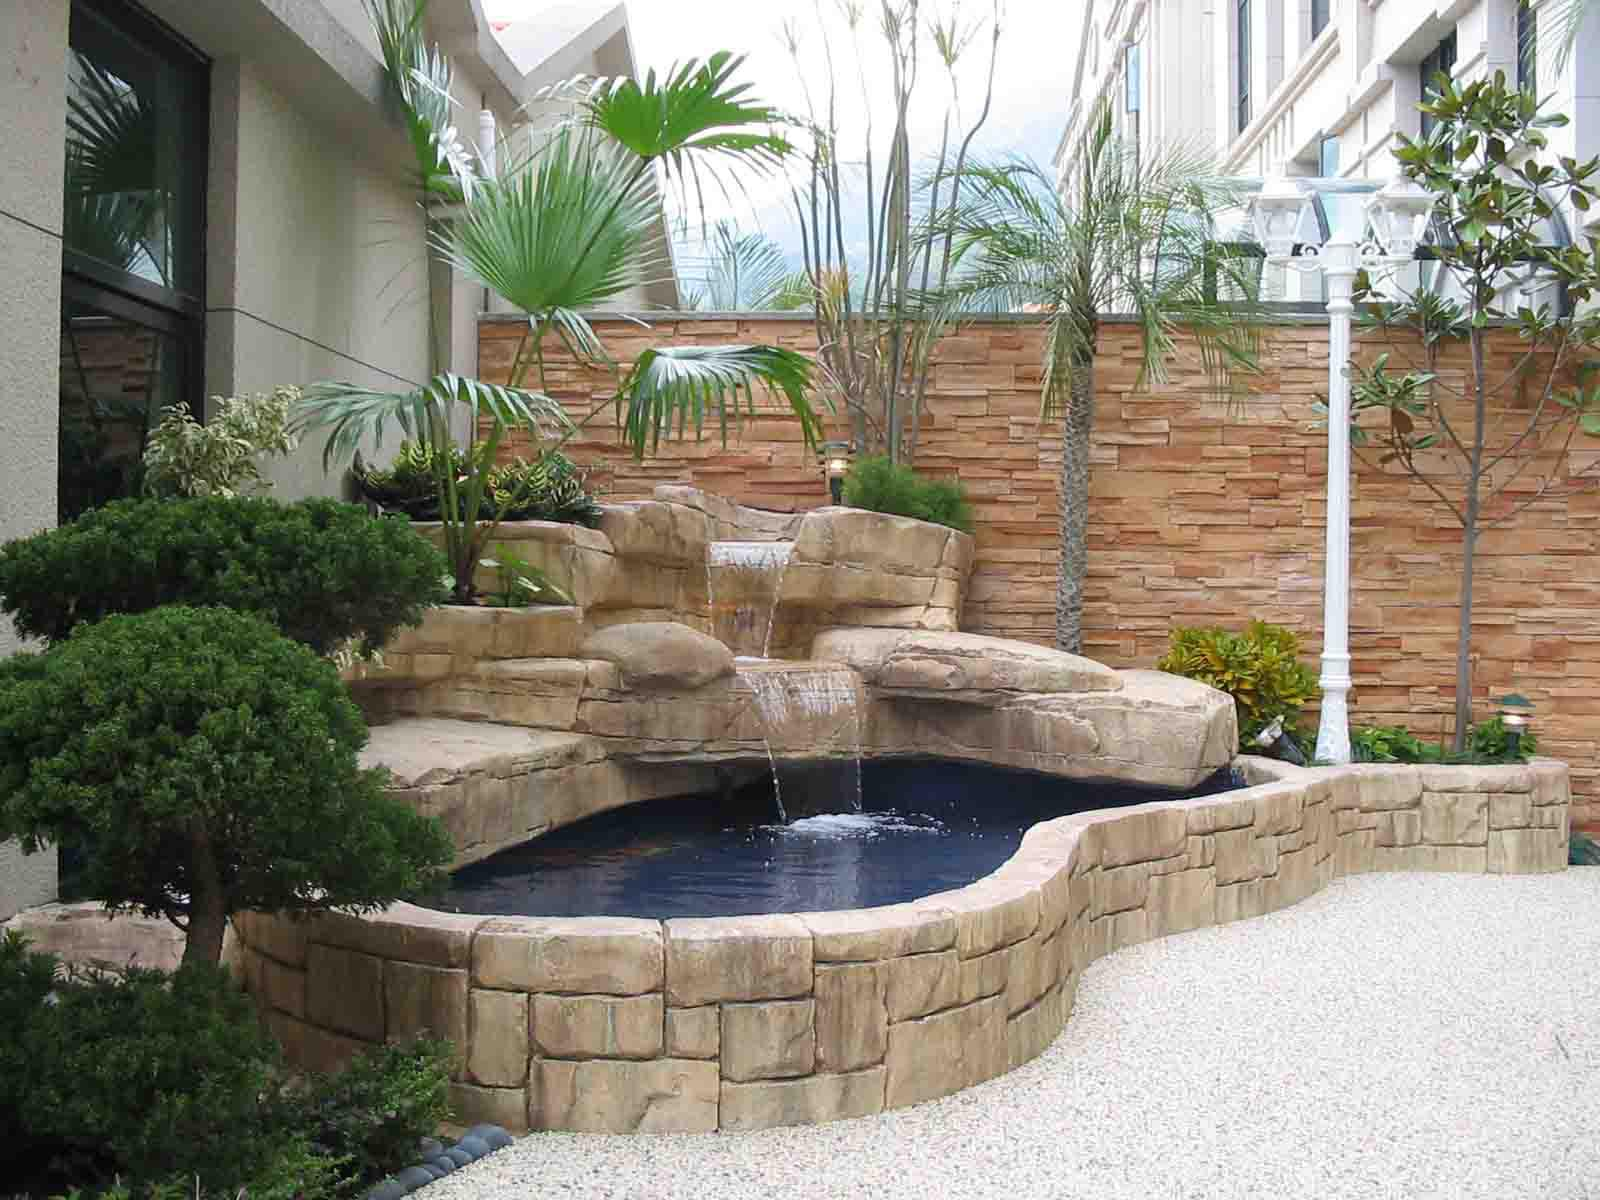 Fish pond garden design backyard design ideas for Fish ponds for small gardens